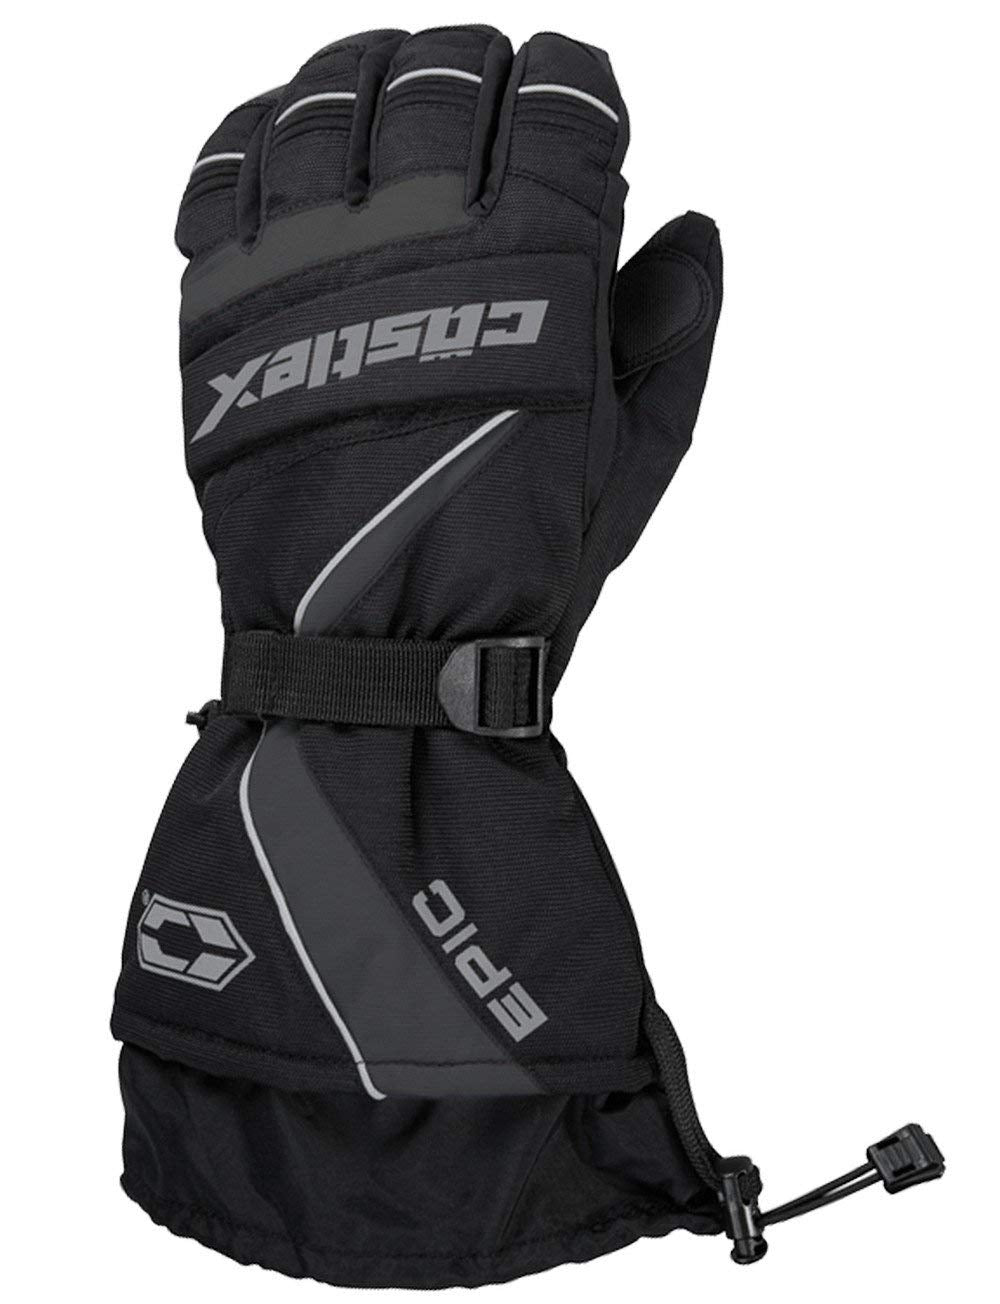 Castle X Epic Waterproof Insulated Snowmobile Winter Snow Glove Black X-Large